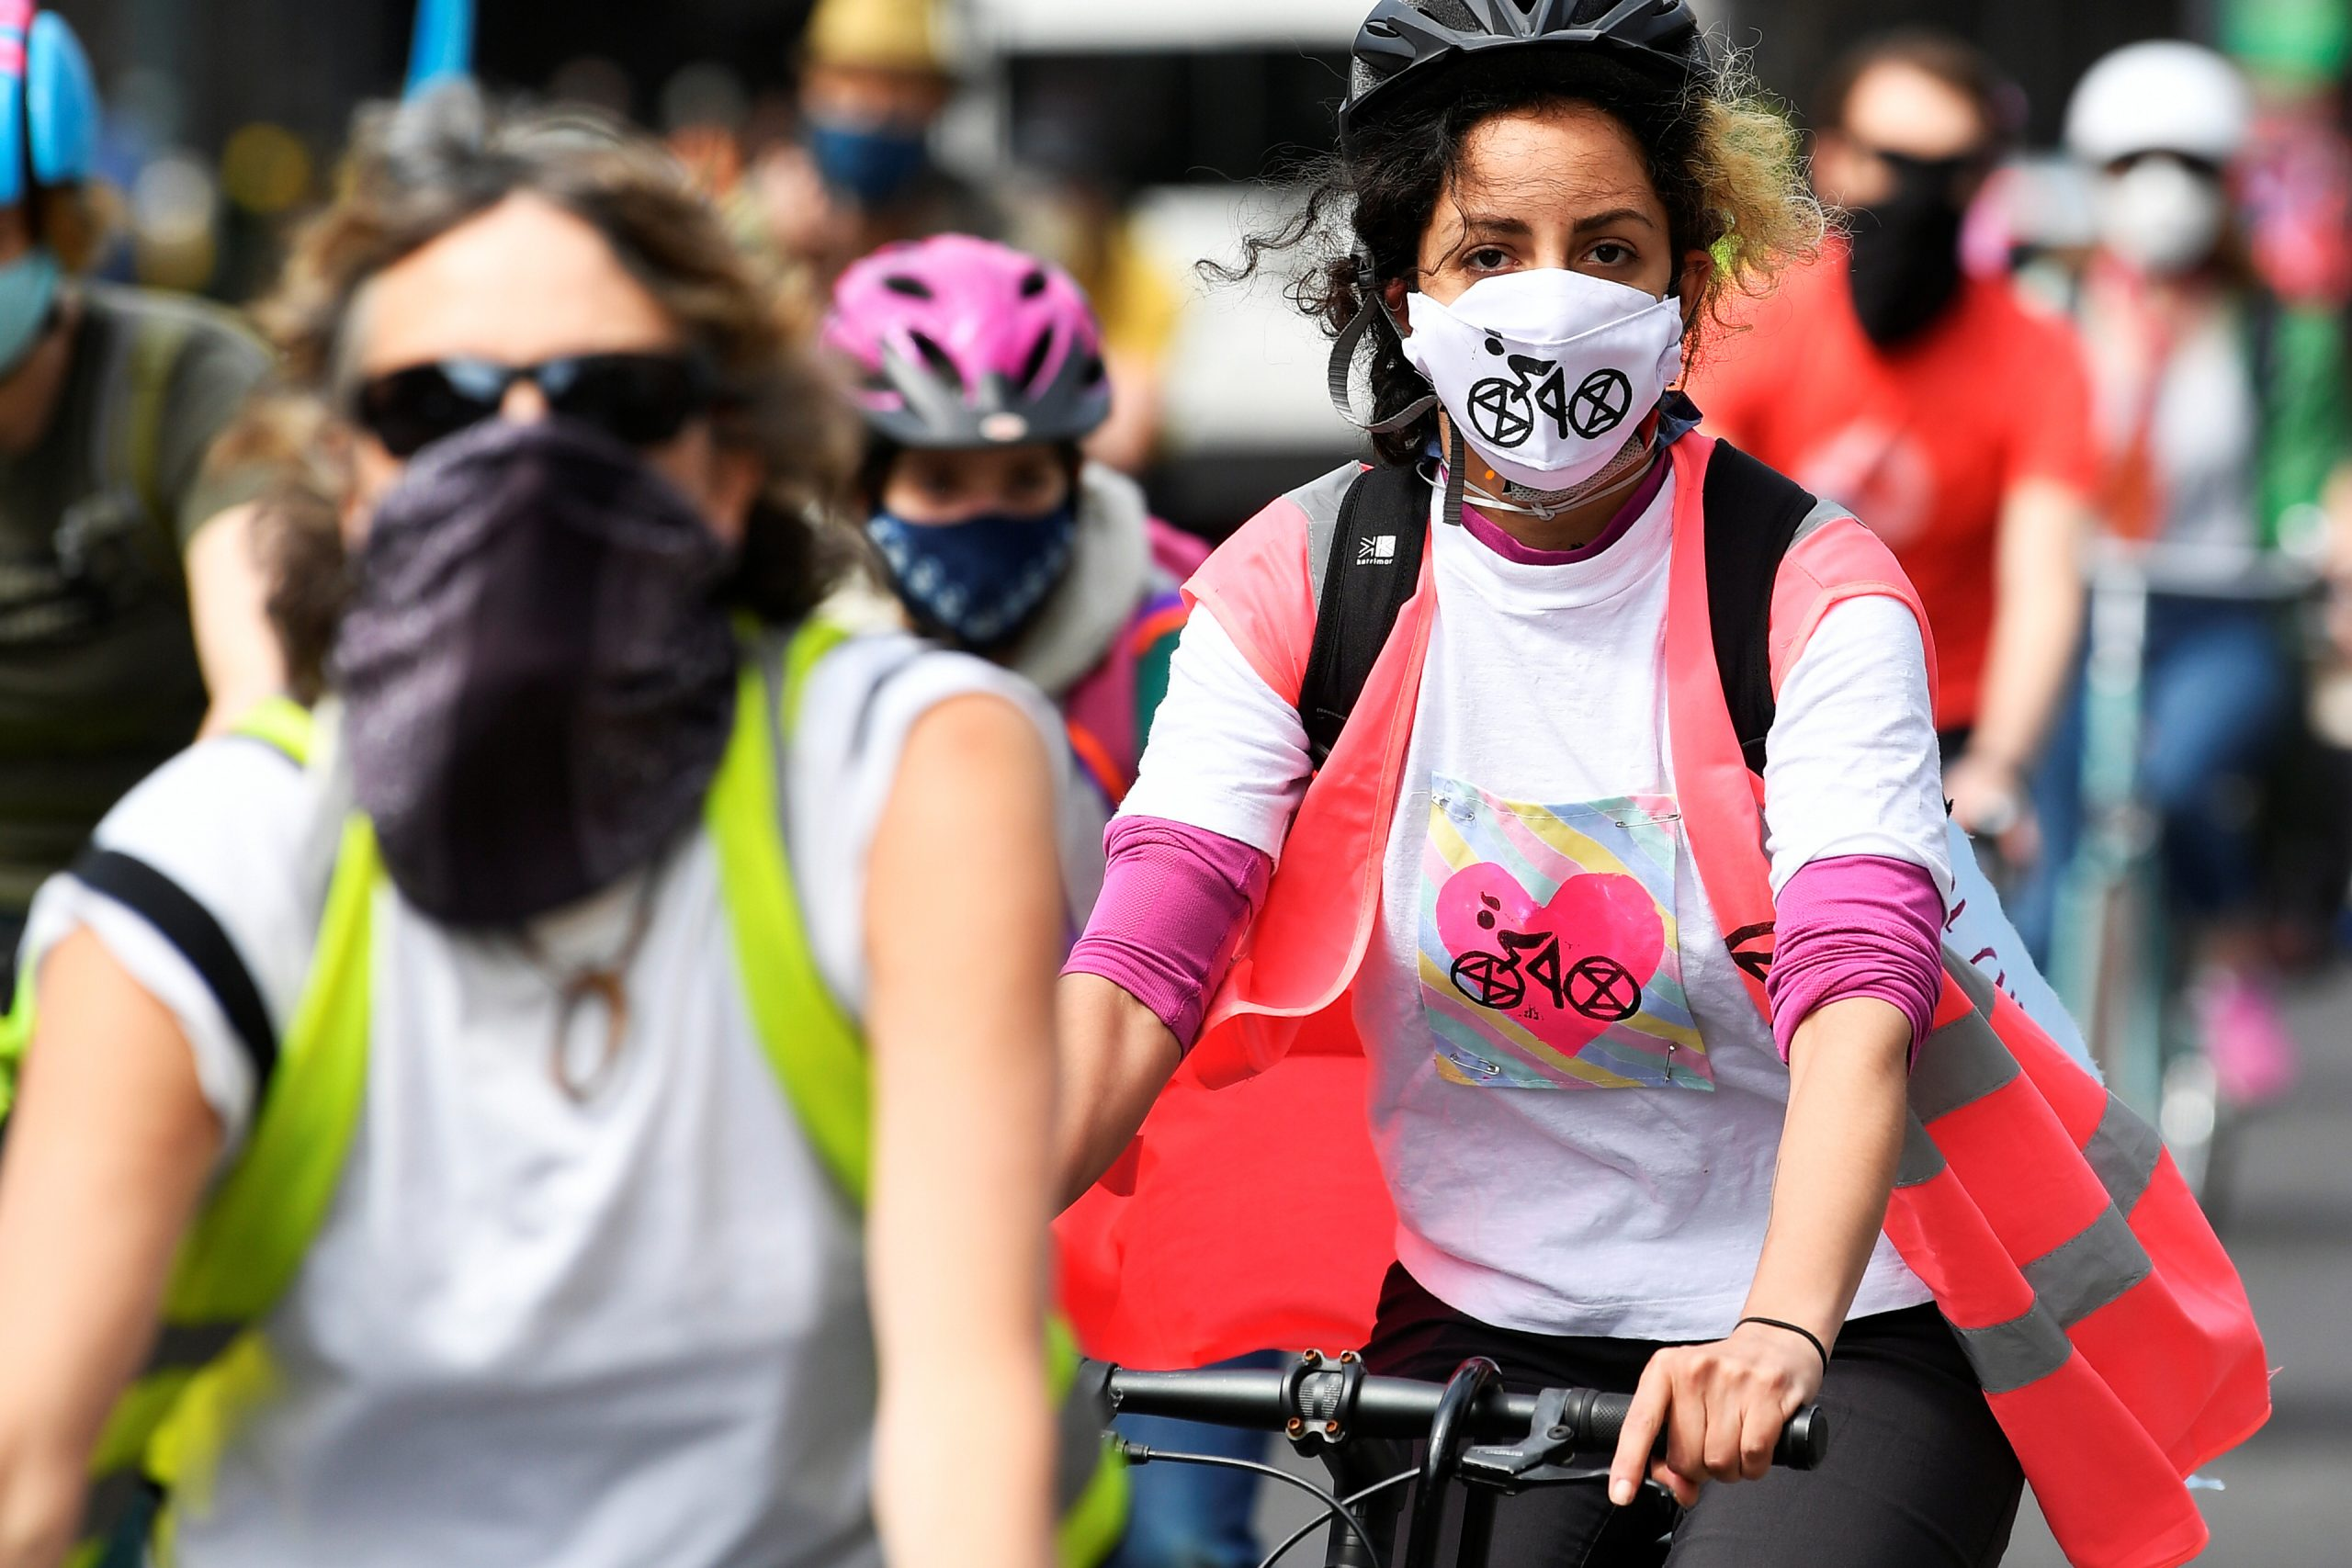 Members of Extinction Rebellion take part in a socially distanced bicycle ride to campaign for more cycling and cycle lanes and fewer vehicles on the roads in London on May 17, 2020. (REUTERS/Toby Melville)